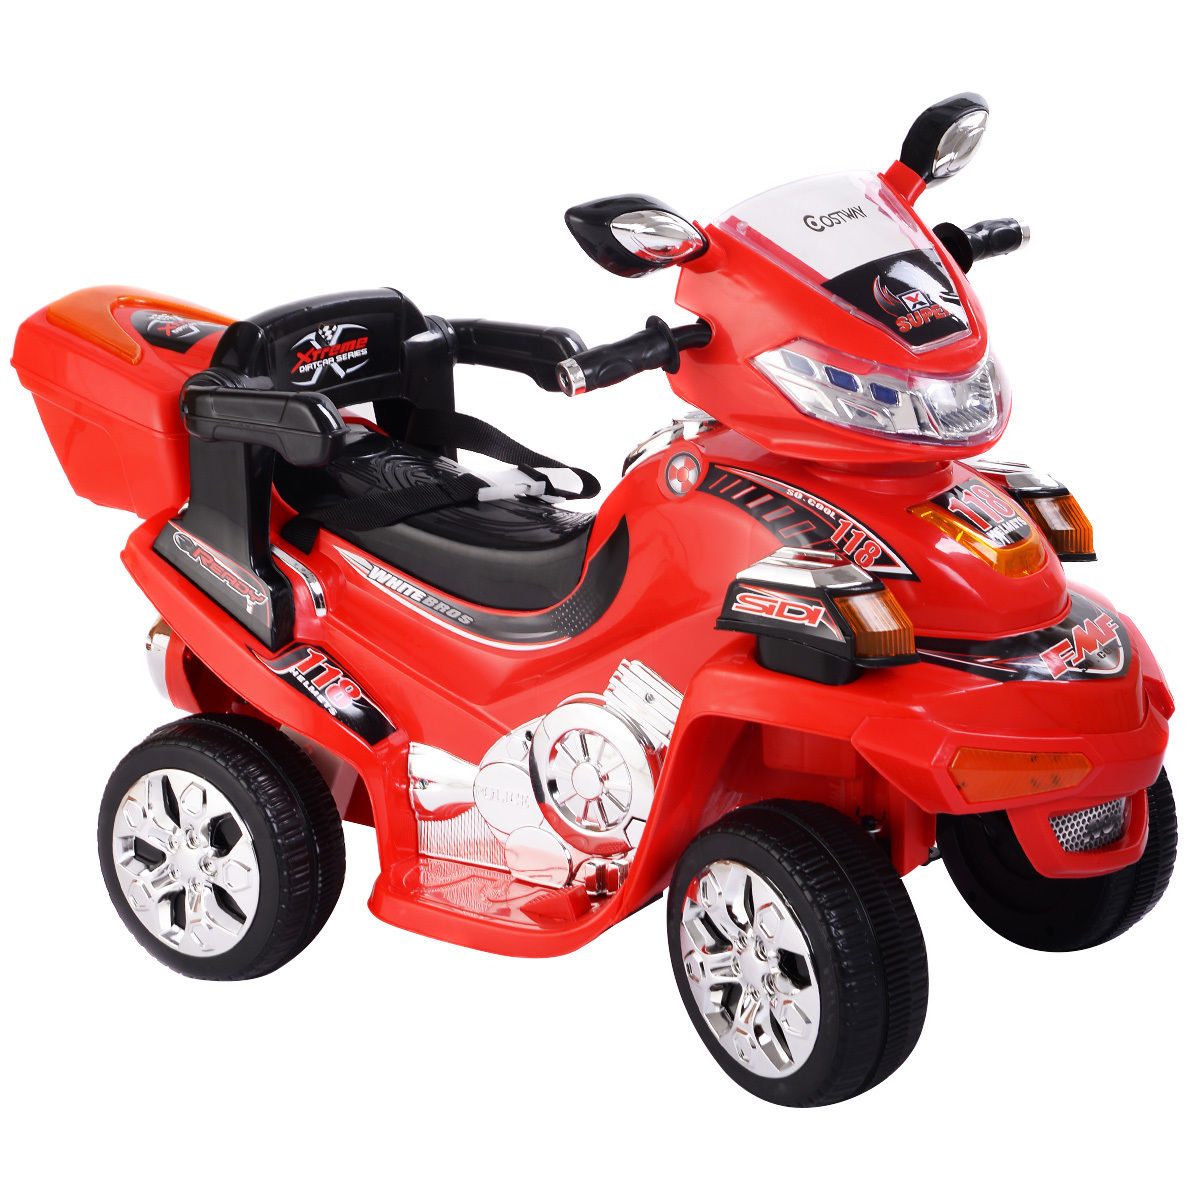 Costway 4 Wheel Kids Ride On Motorcycle 6V Battery Powered R/C Electric Toy Power Bicyle Red